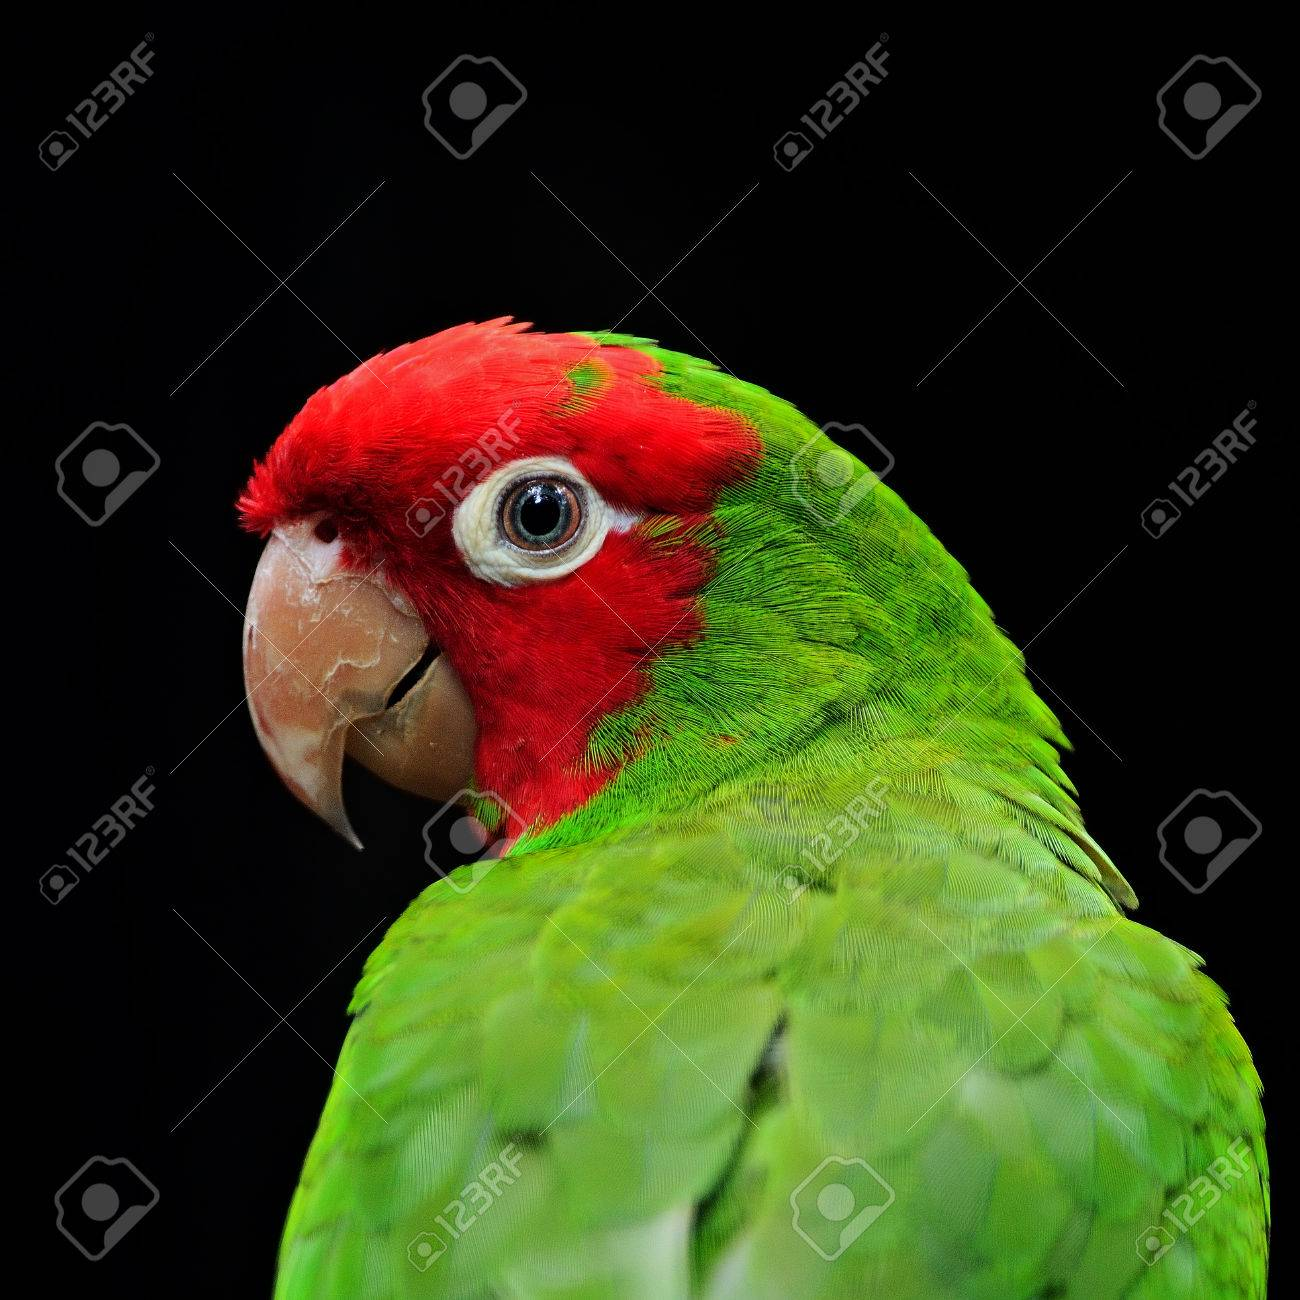 Colorful Red Masked Conure or Cherry-headed Conure (Aratinga erythrogenys), face profile Stock Photo - 23575471